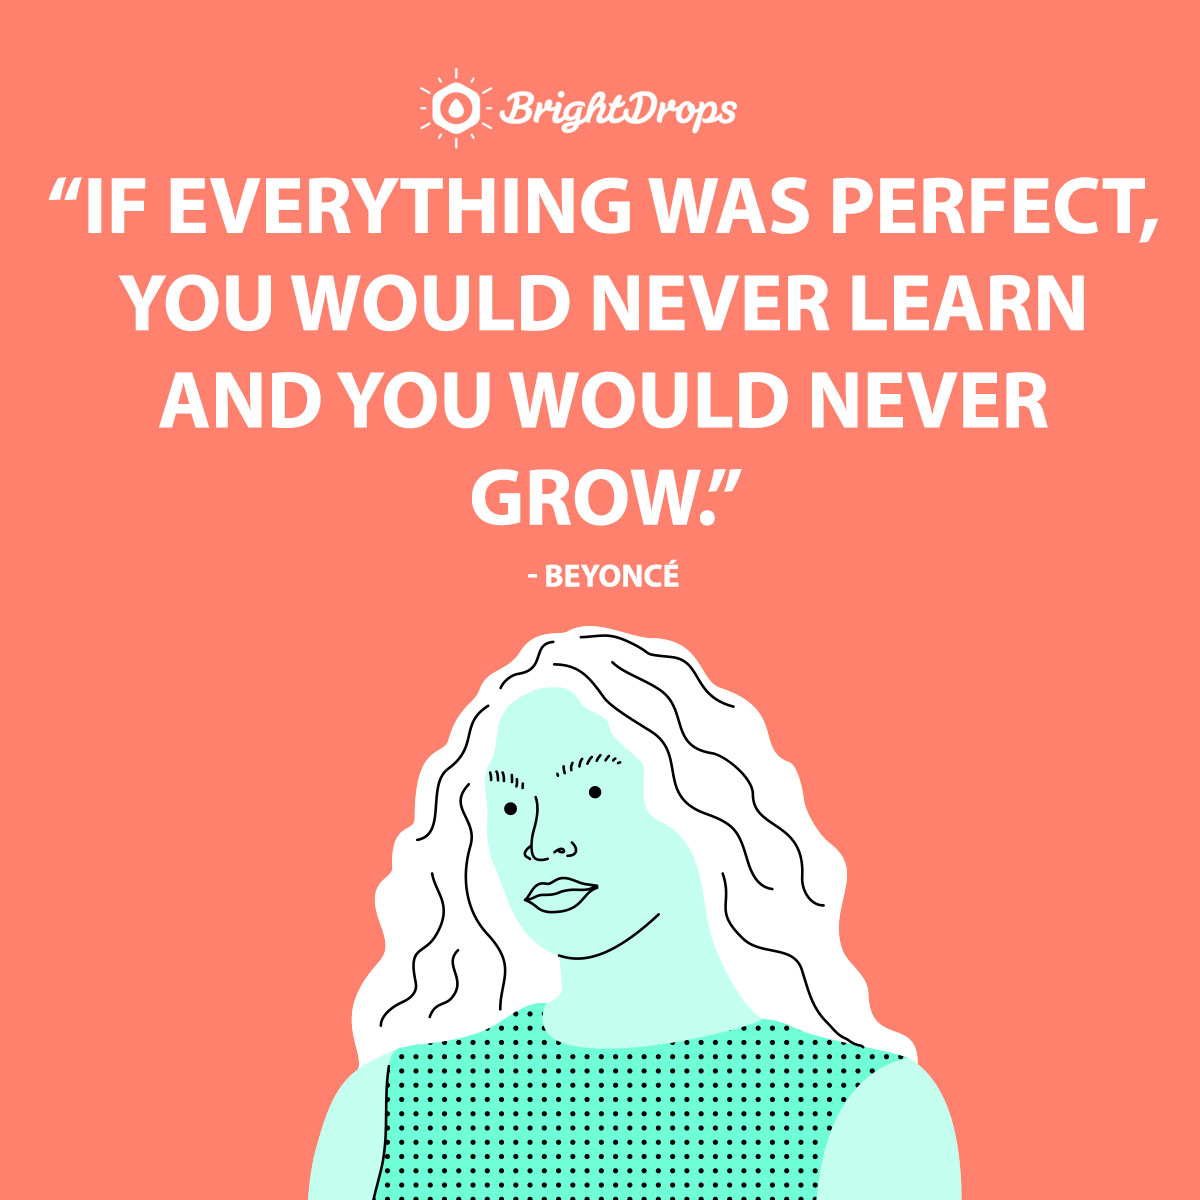 If everything was perfect, you would never learn and you would never grow. - Beyoncé